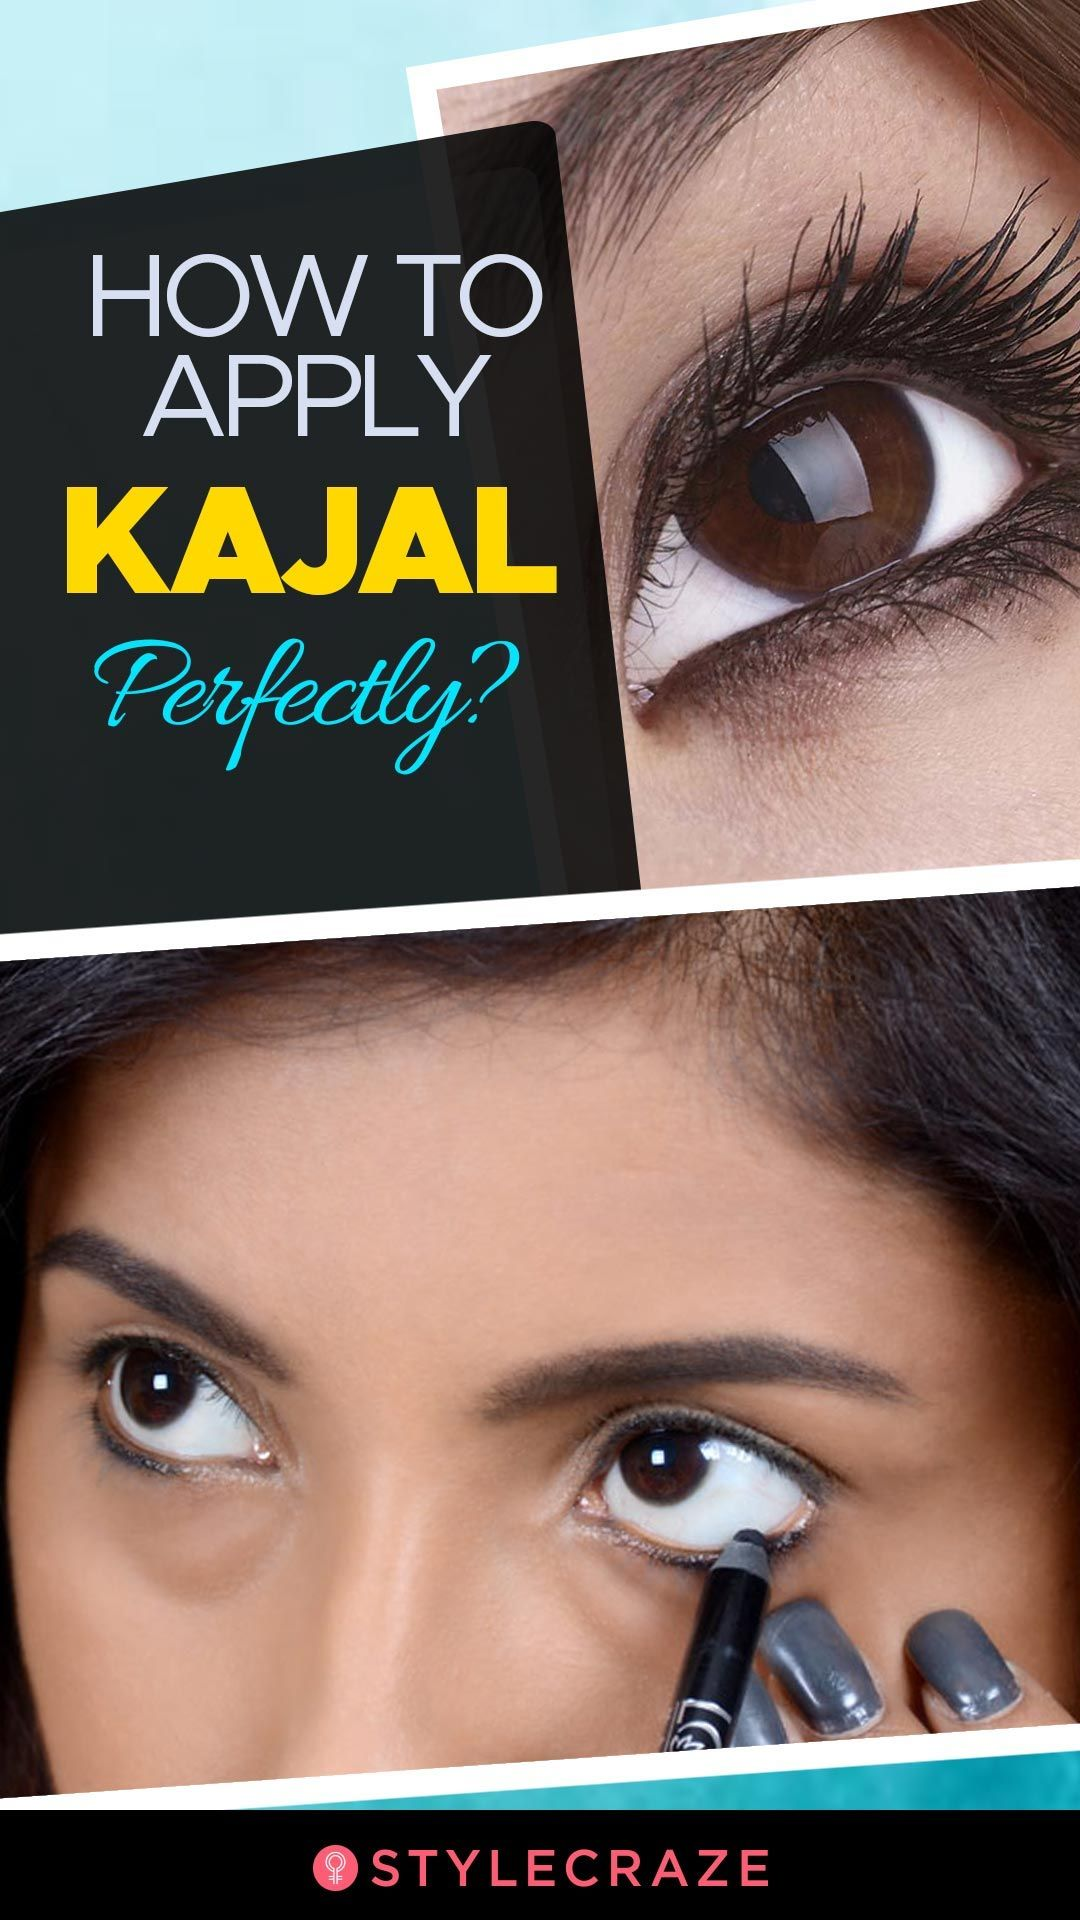 How To Apply Kajal On Eyes Perfectly? Step by Step